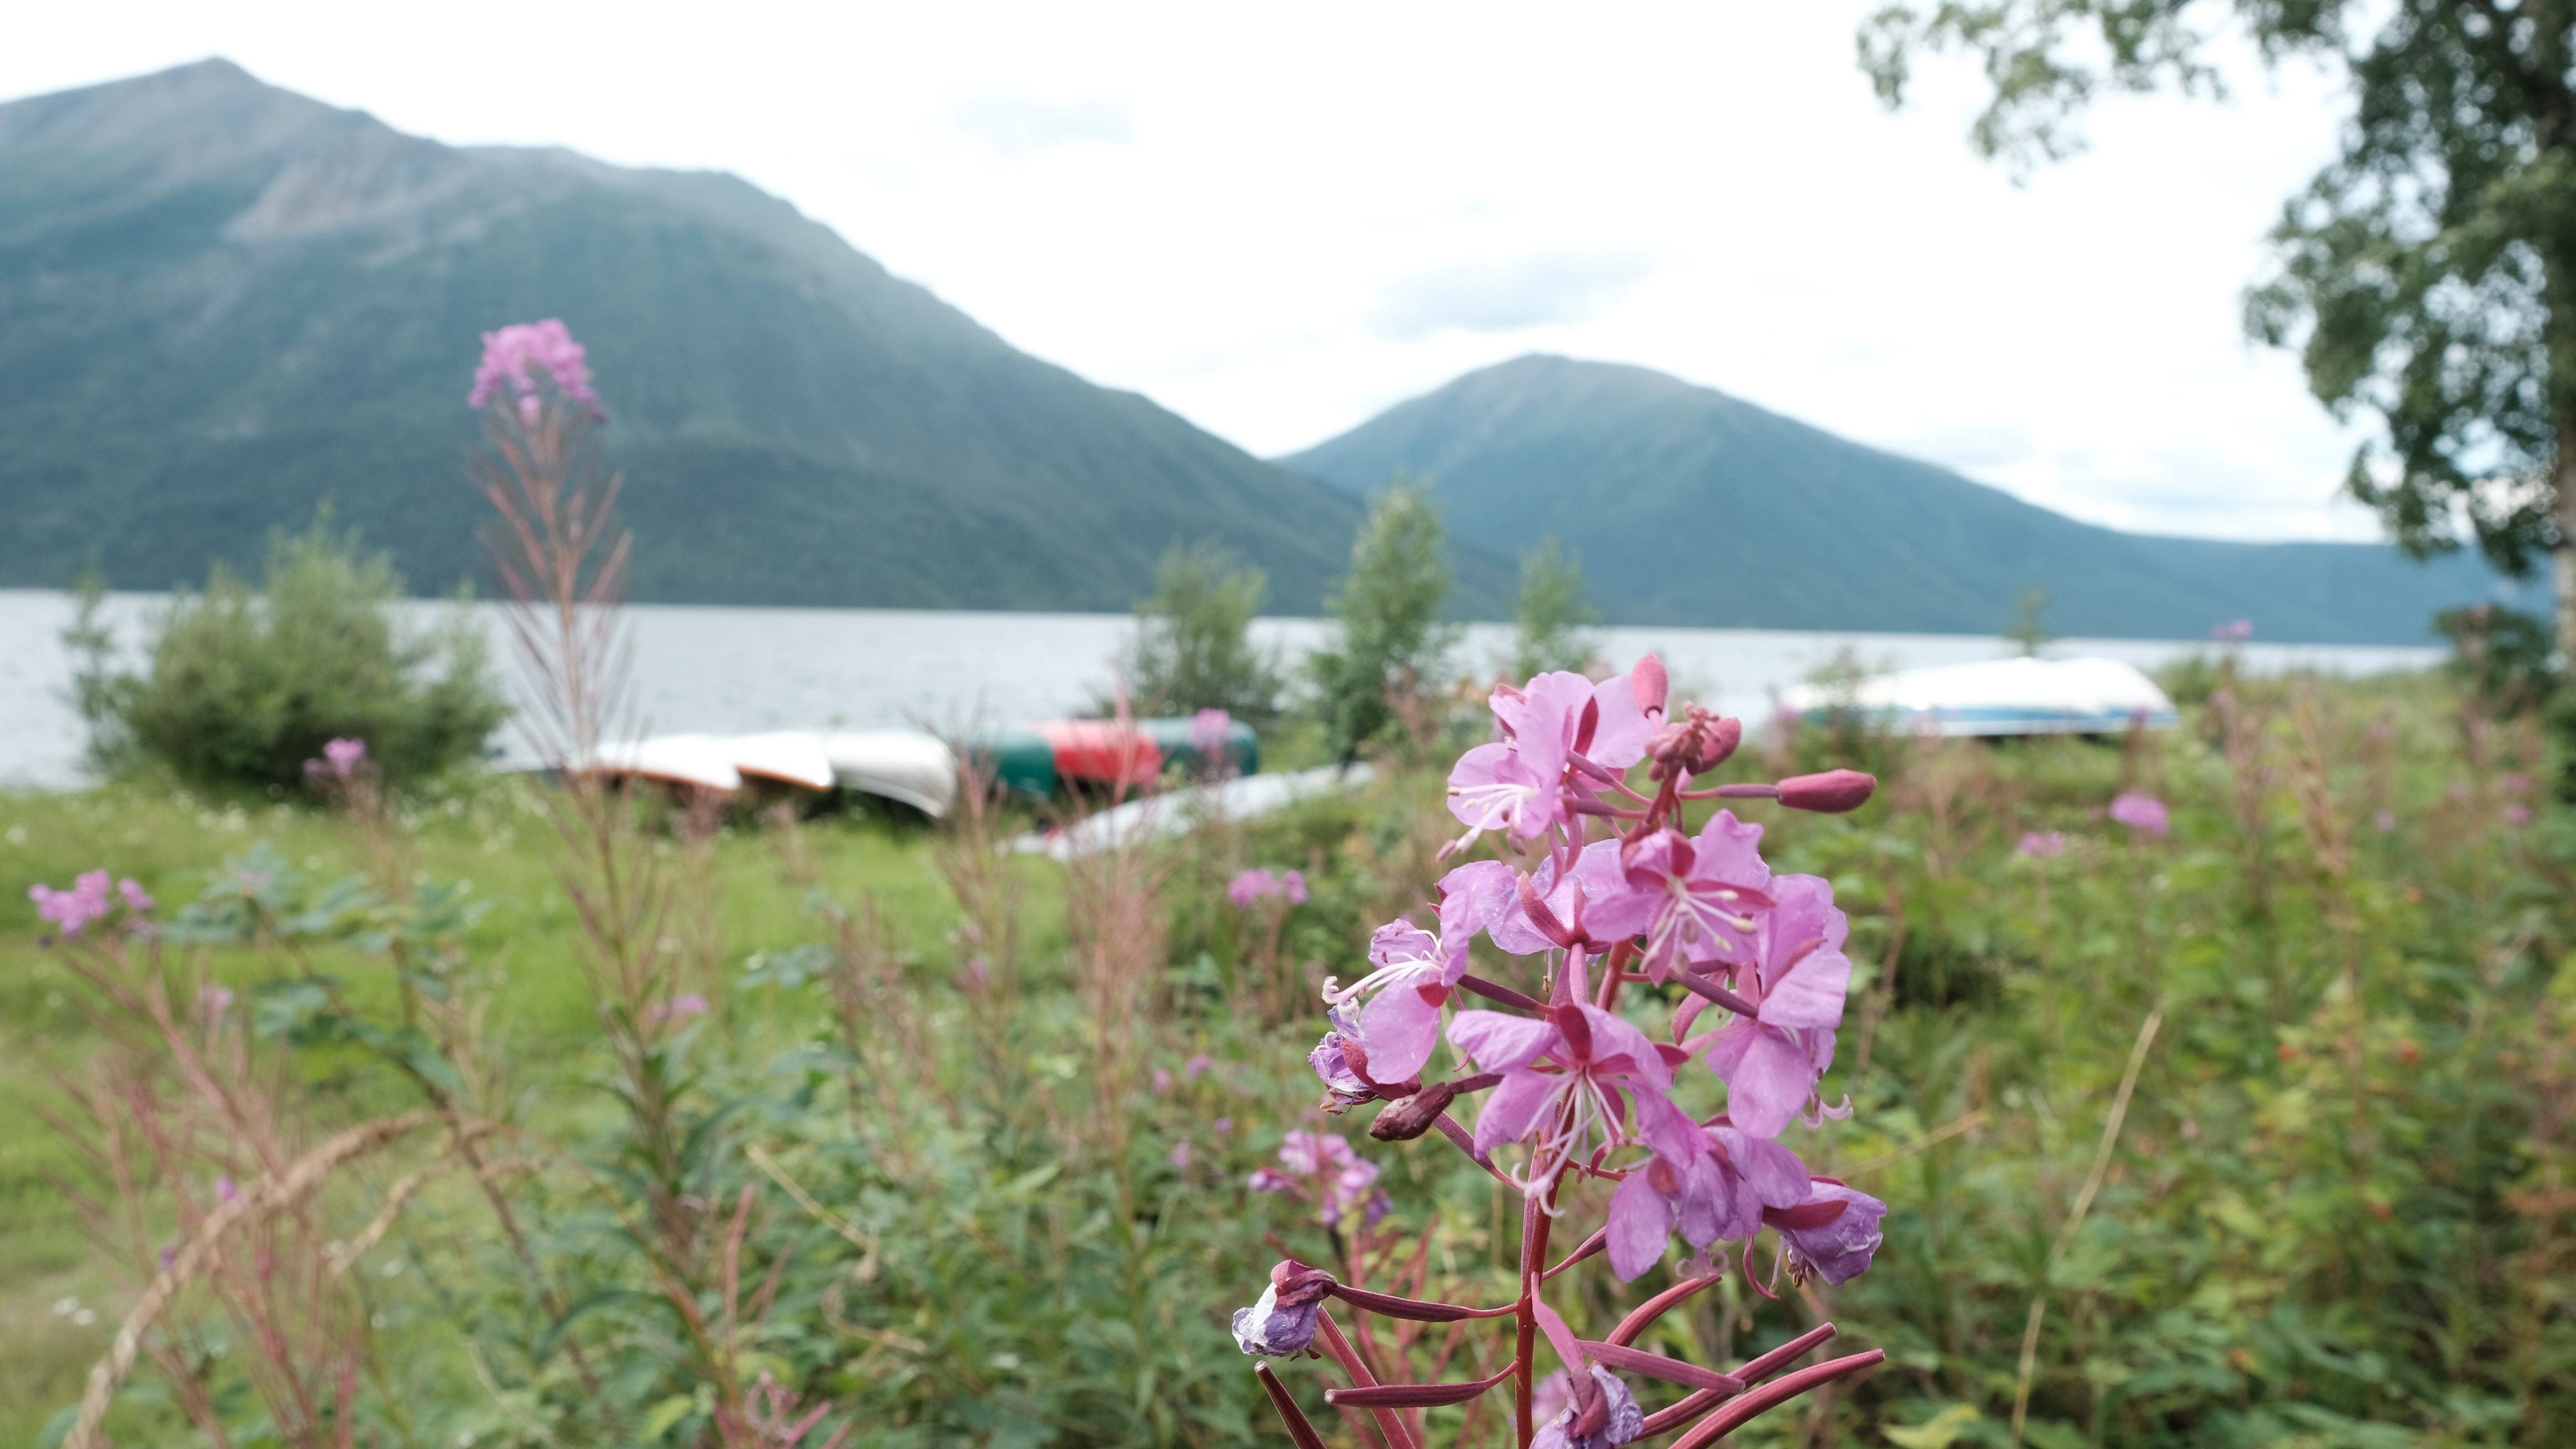 For the Love of Nature in the Yukon